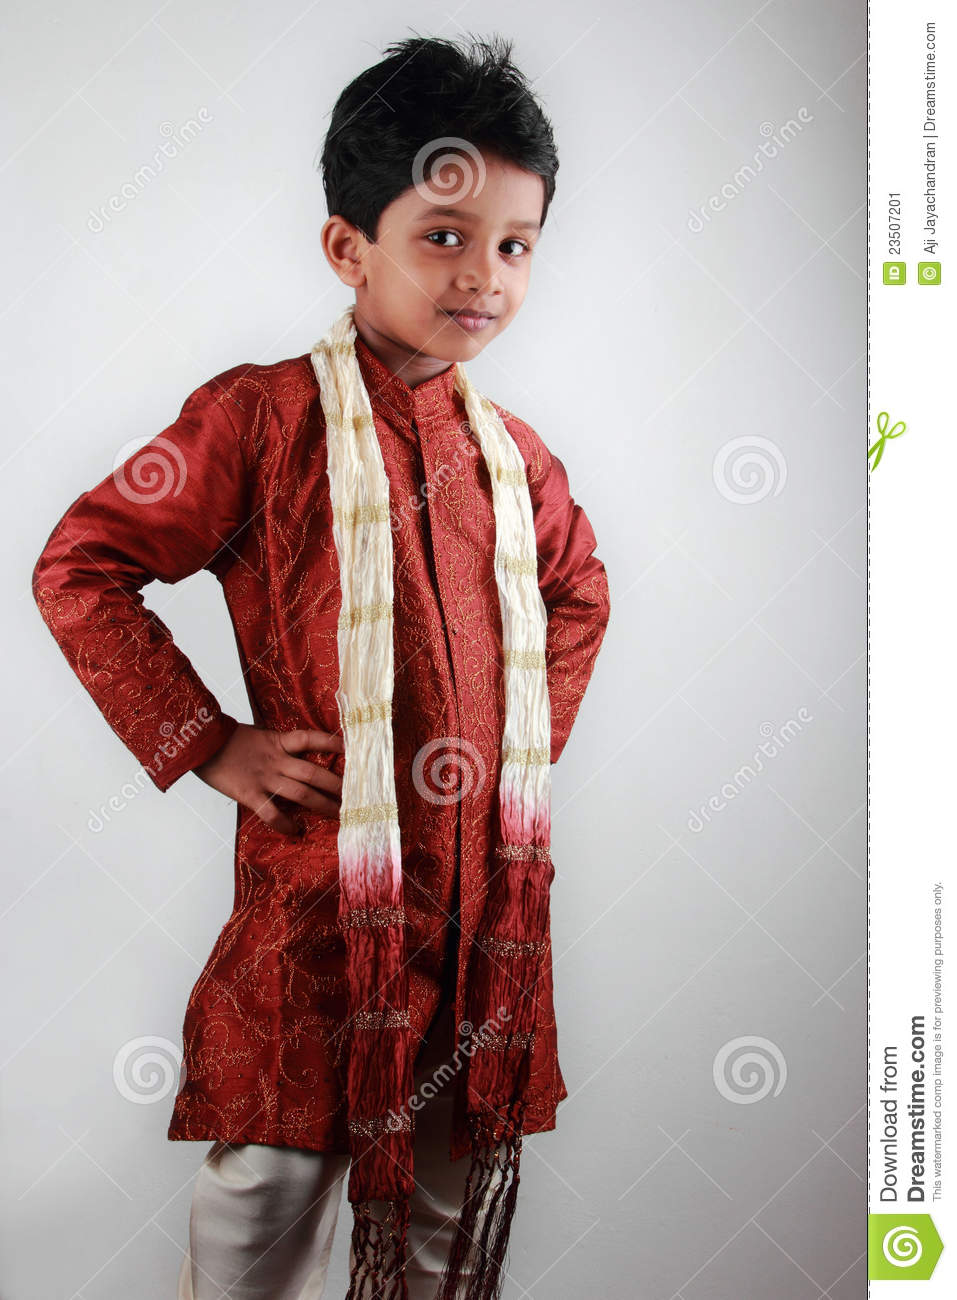 Boy Wearing Traditional Dress Stock Image Image Of Lovely Face 23507201